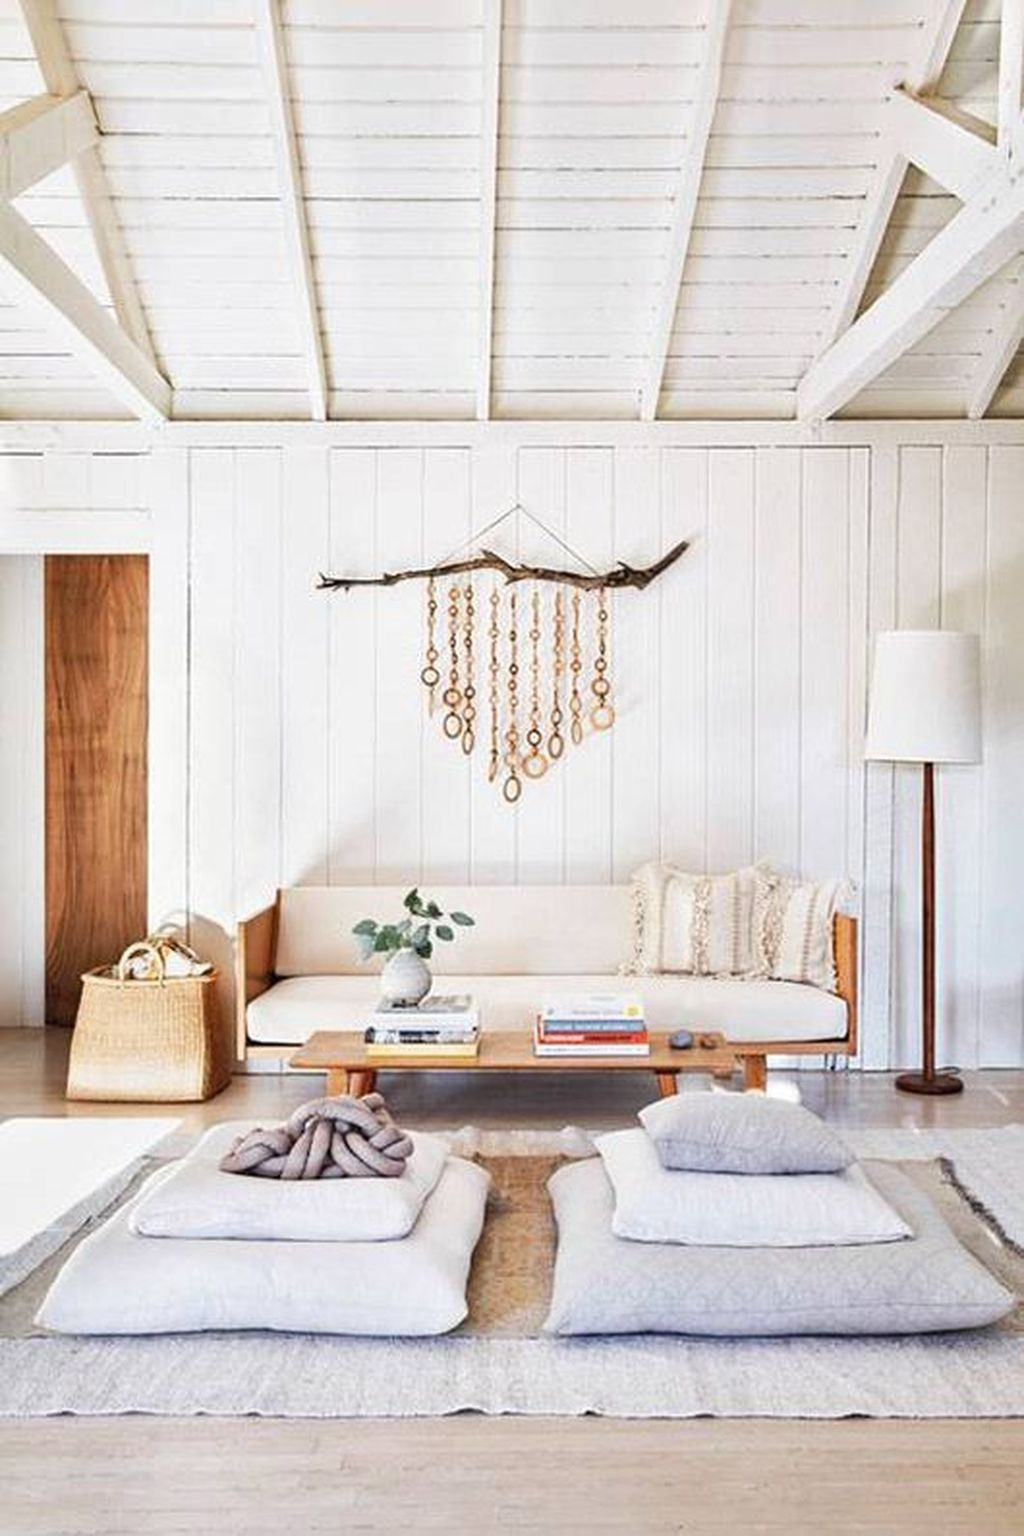 50 Romantic Bohemian Style Living Room Design Ideas | Bohemian style ...